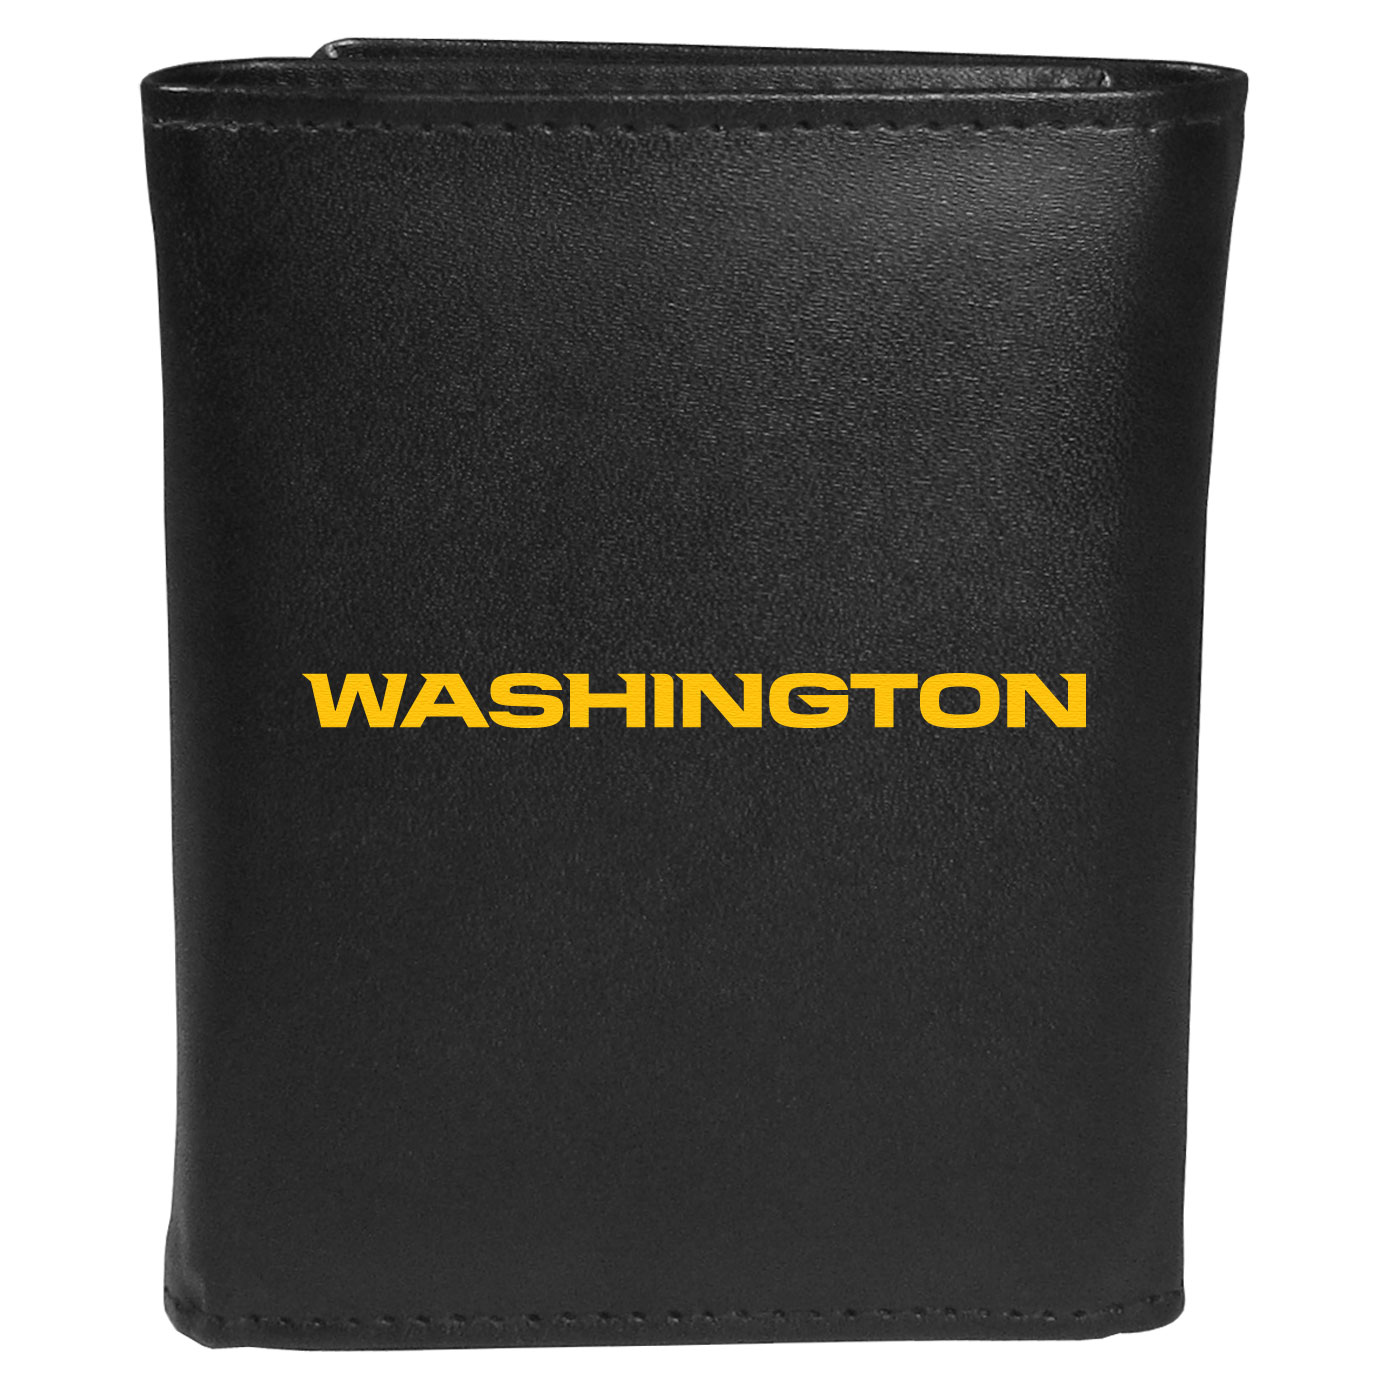 Washington Redskins Leather Tri-fold Wallet, Large Logo - Our classic fine leather tri-fold wallet is meticulously crafted with genuine leather that will age beautifully so you will have a quality wallet for years to come. This is fan apparel at its finest. The wallet is packed with organizational  features; lots of credit card slots, large billfold pocket, and a window ID slot. The front of the wallet features an extra large Washington Redskins printed logo.